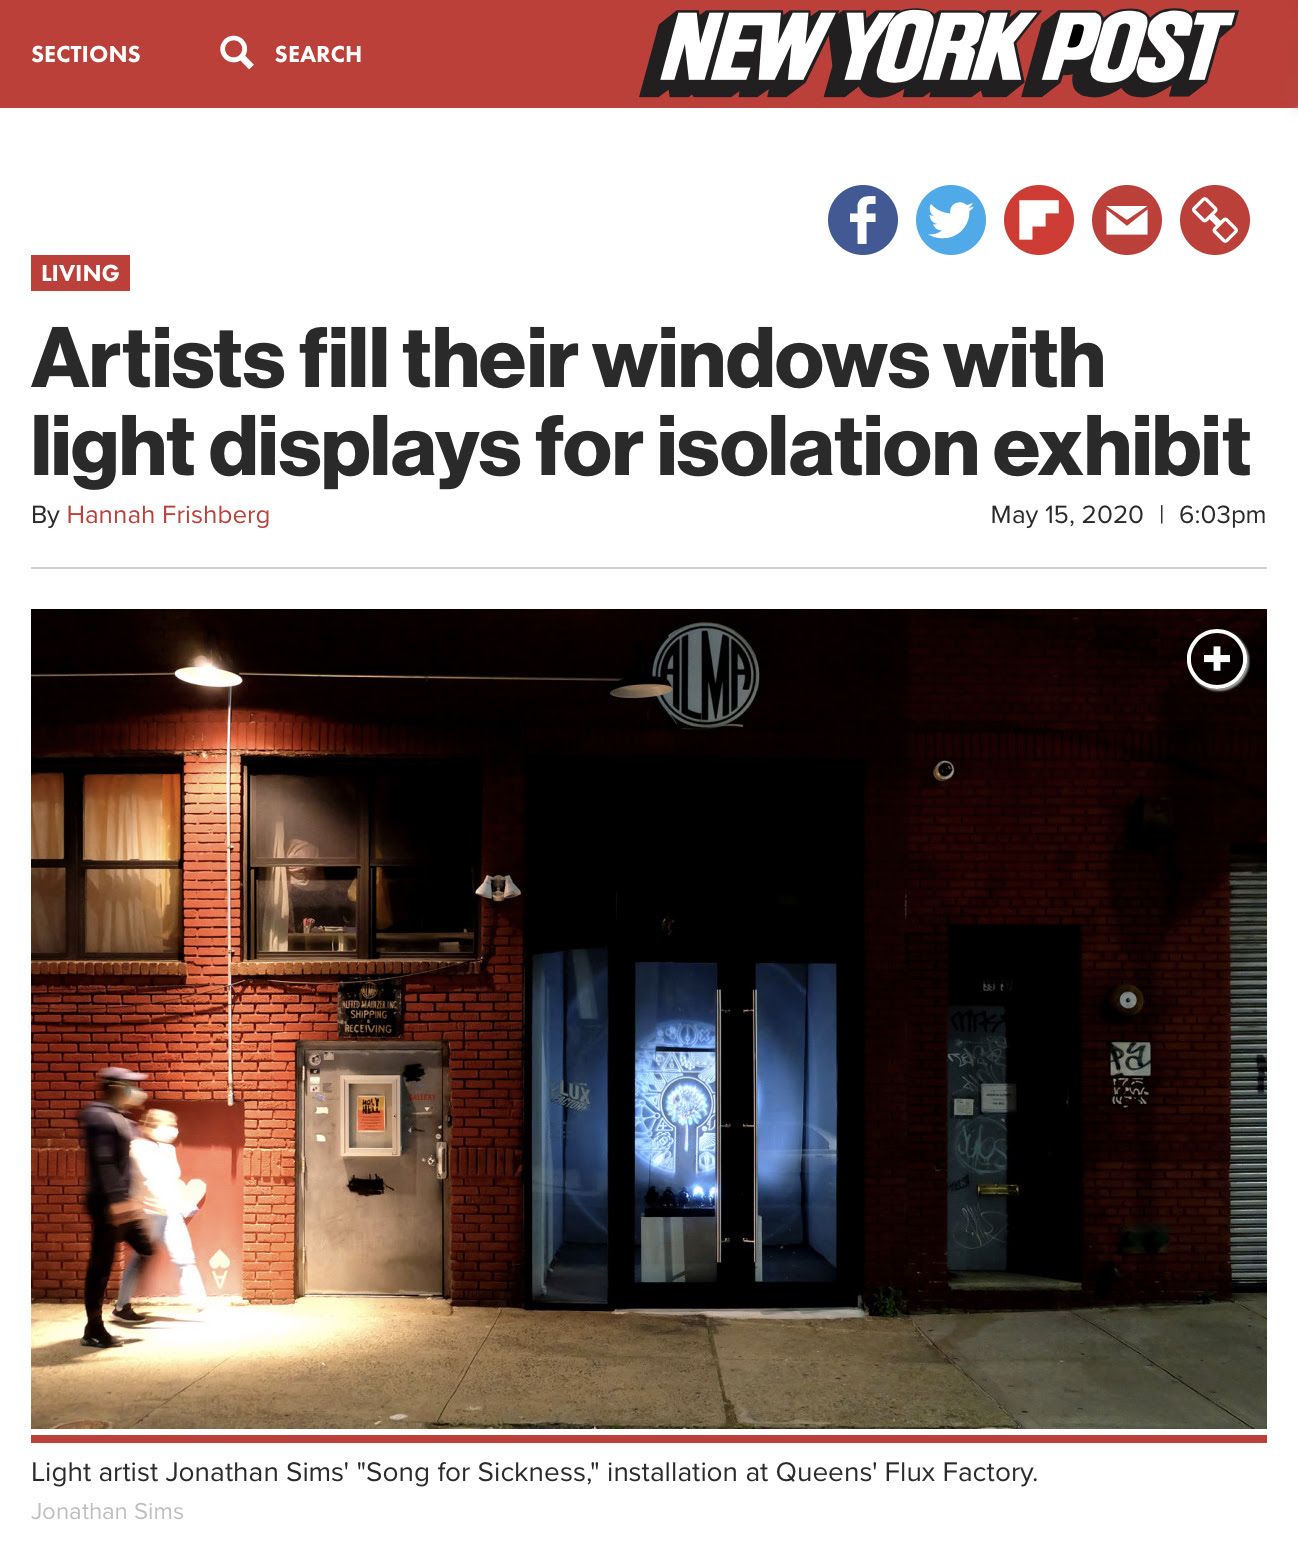 """The front of the Flux Factory building. Two blurry people walk by on the left, and Jonathan Sims' light installation A Song For Sadness is visible through the gallery windows. At the top of the frame is the heading """"The New York Post,"""" and the title """"Artists fill their windows with light displays for isolation exhibit."""""""